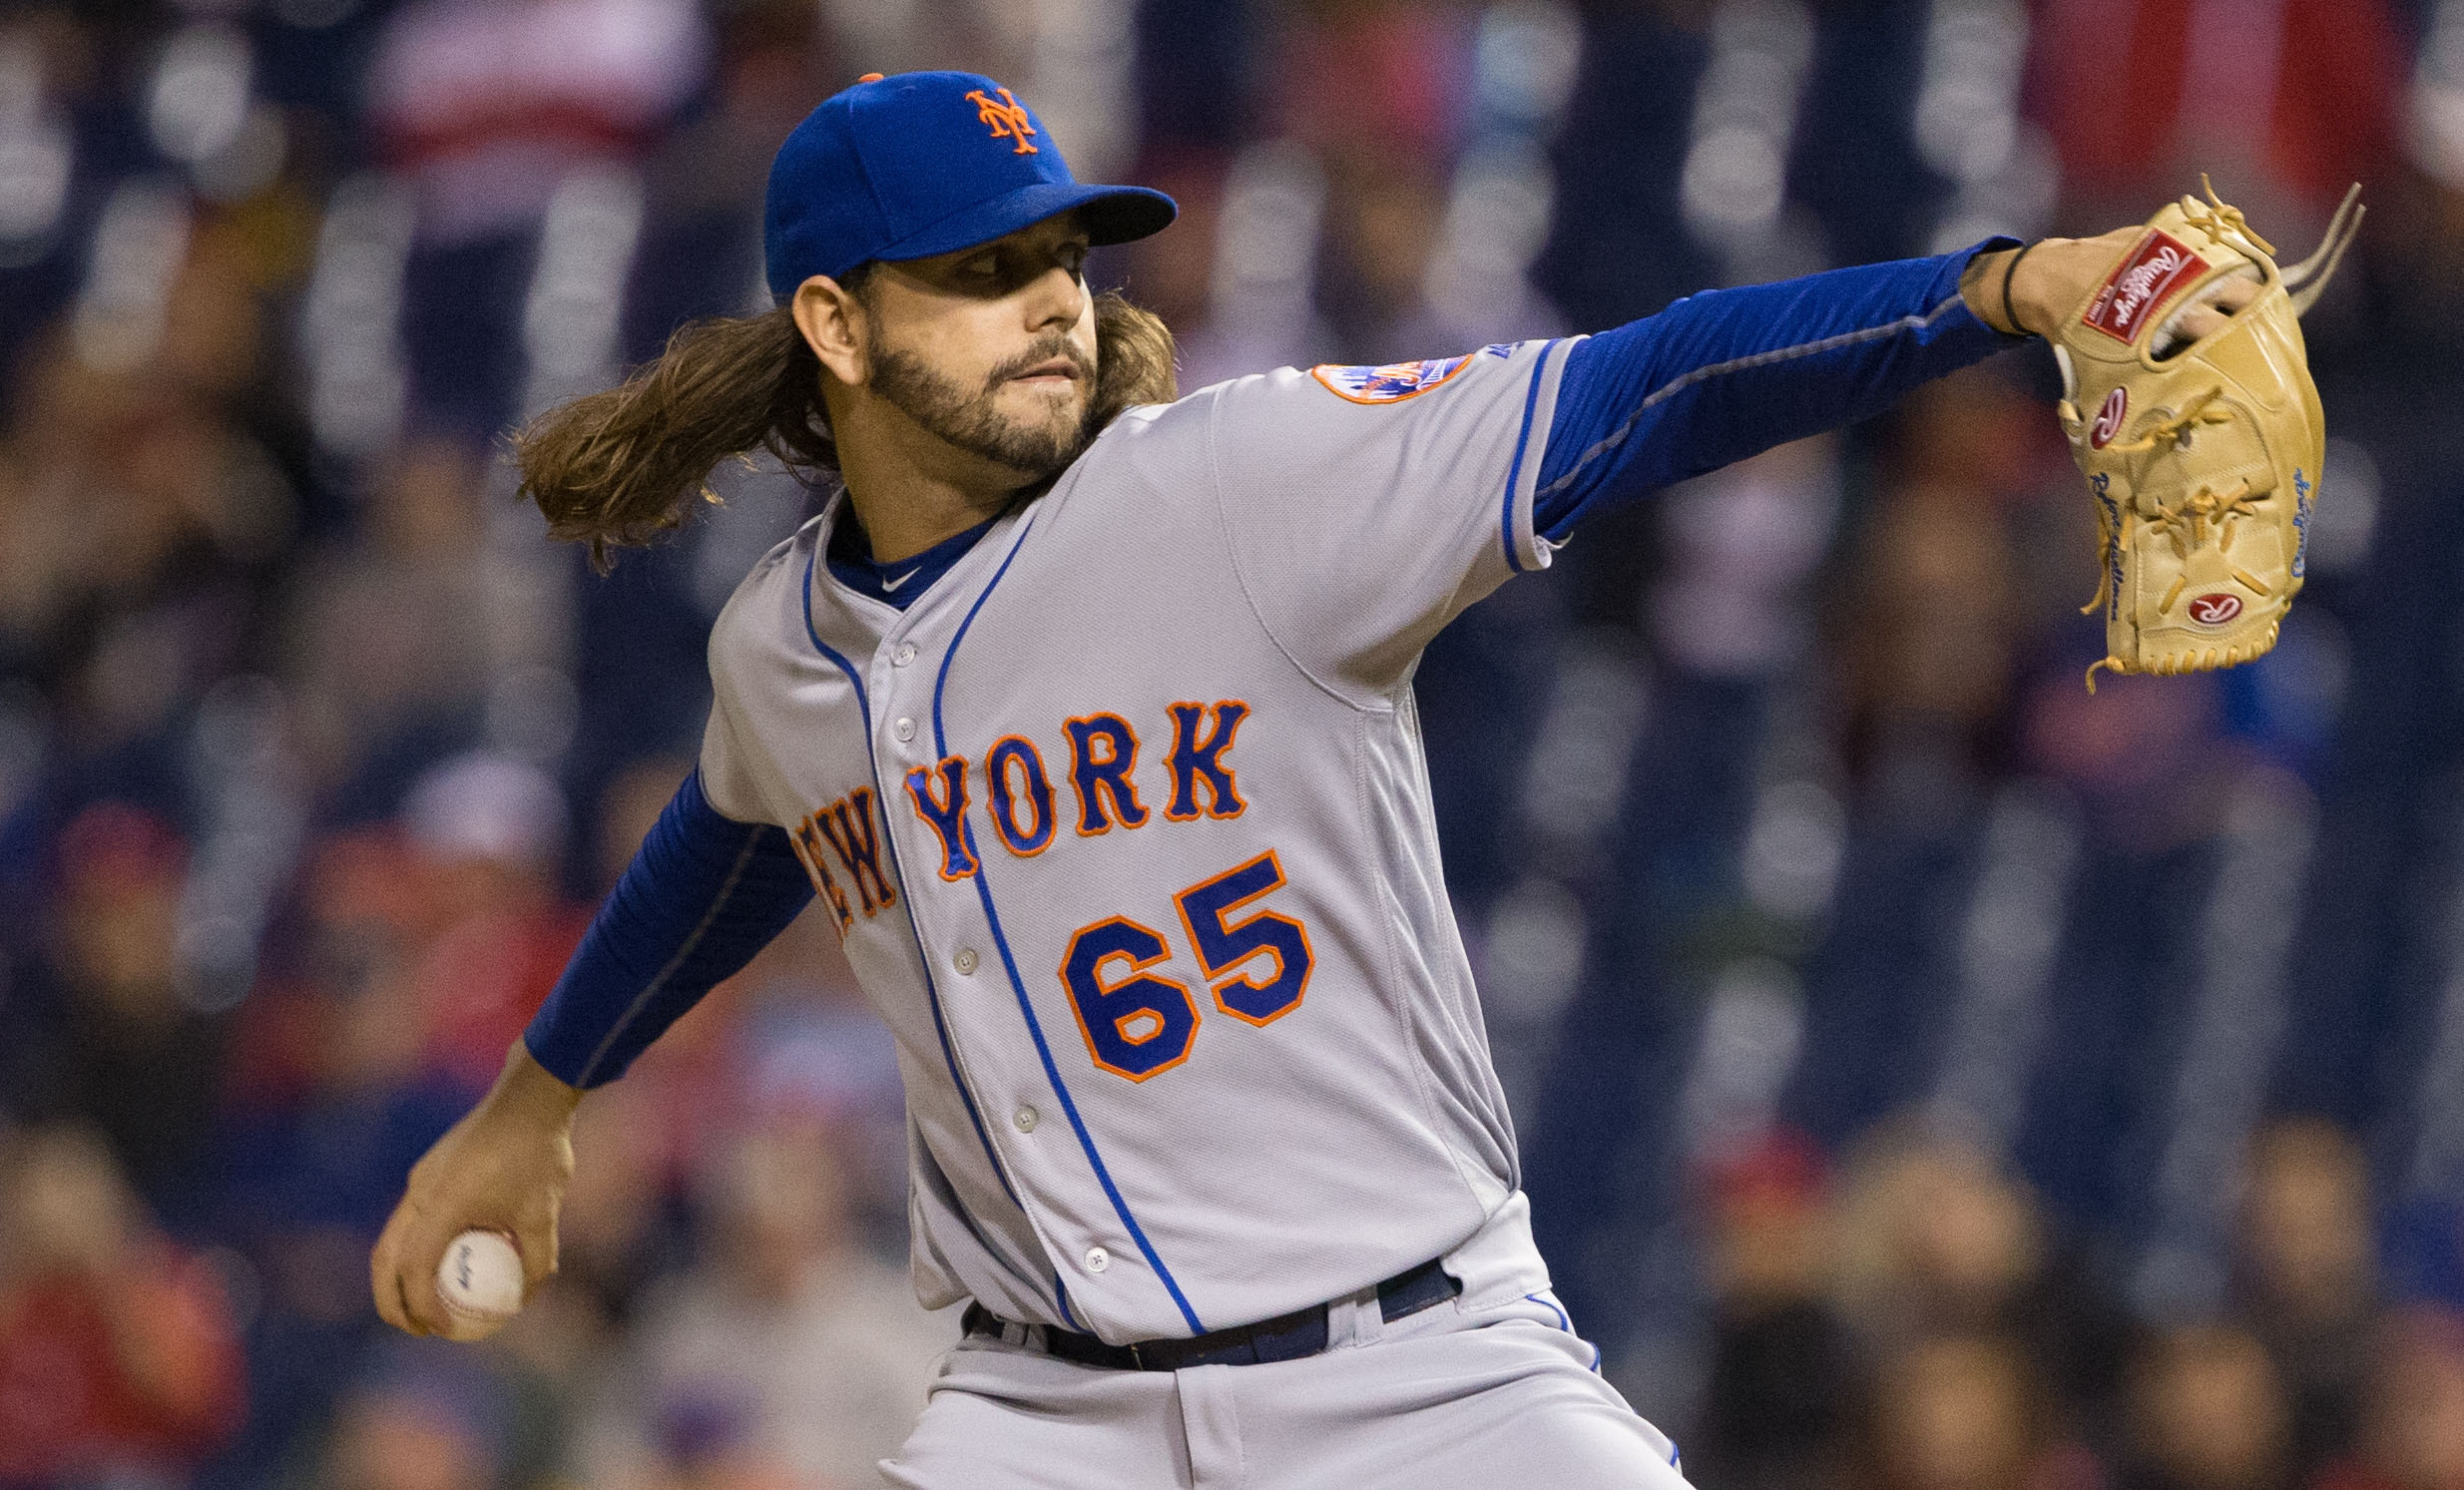 Sep 30, 2016; Philadelphia, PA, USA; New York Mets starting pitcher Robert Gsellman (65) pitches against the Philadelphia Phillies during the first inning at Citizens Bank Park. Mandatory Credit: Bill Streicher-USA TODAY Sports